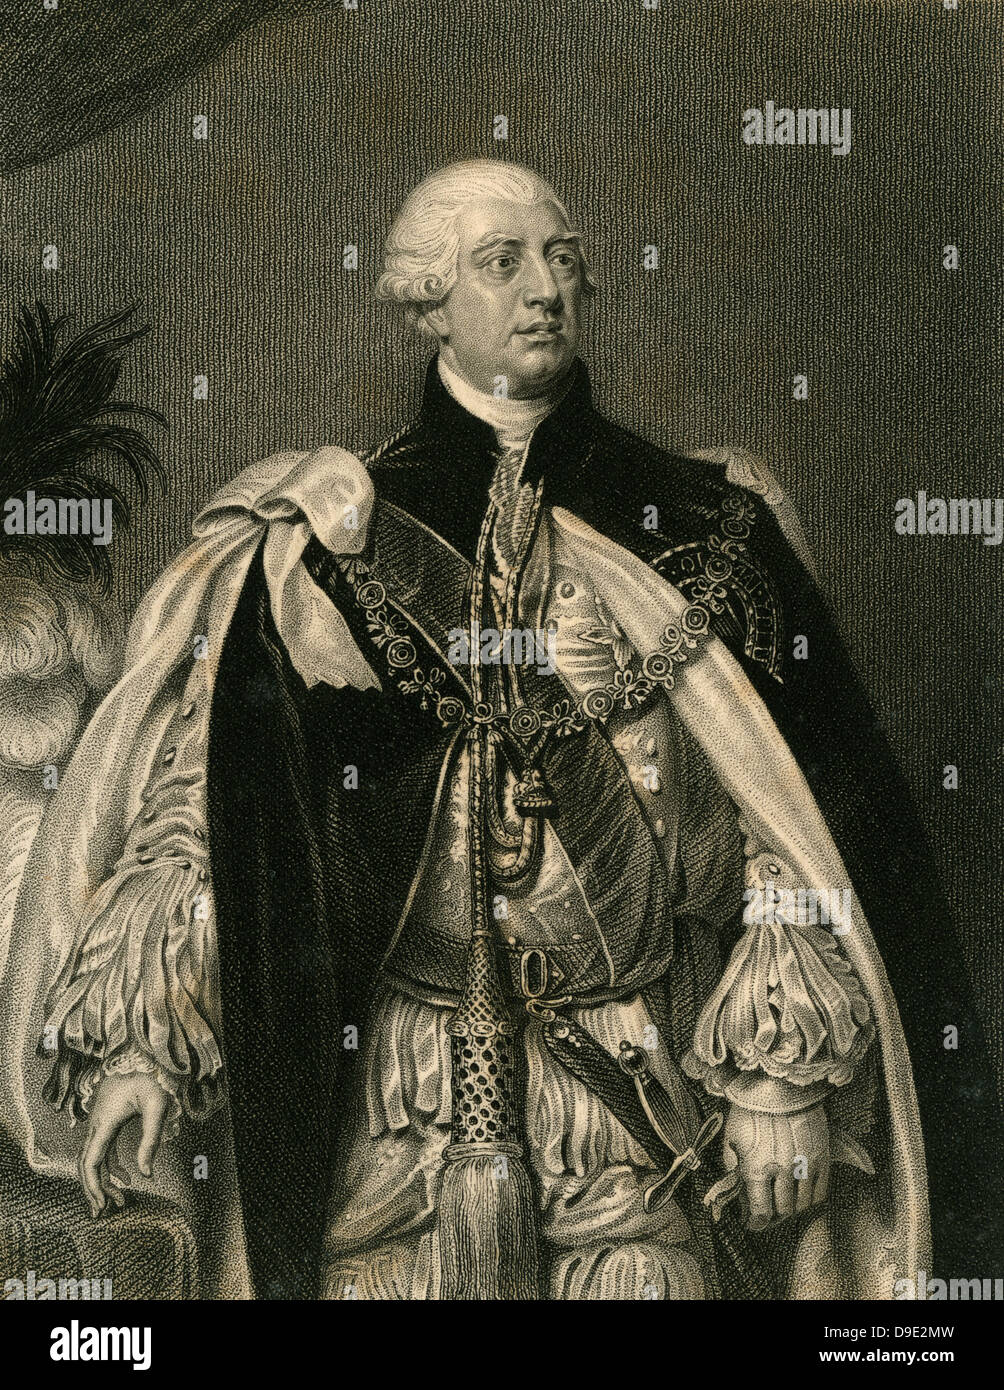 Archibald Campbell (c1607-1661) 8th Earl of Argyll, Scottish nobleman. - Stock Image